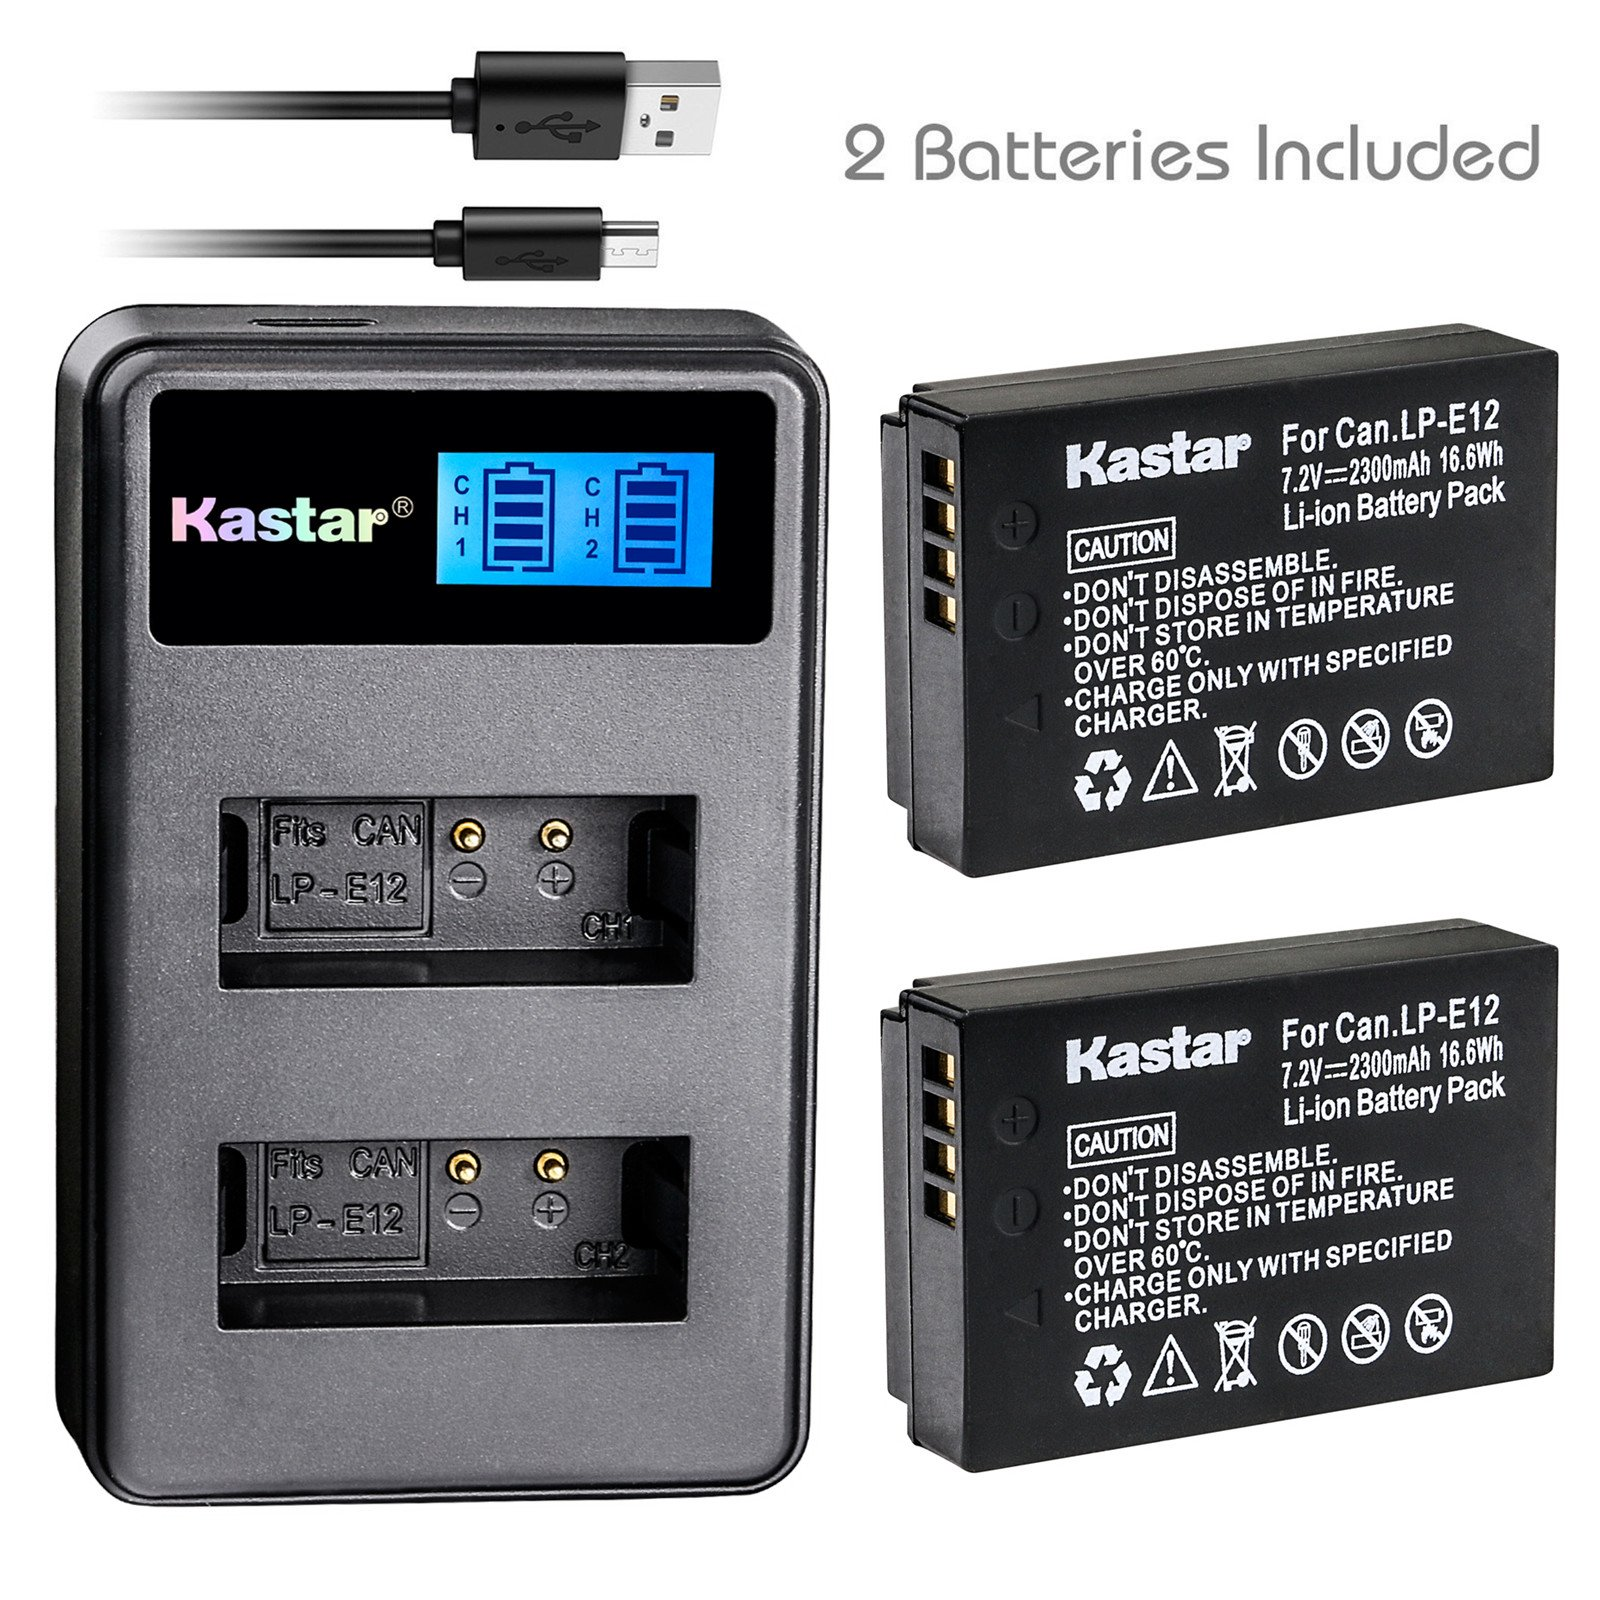 Kastar Battery (X2) & LCD Dual Slim Charger for Canon LP-E12 and Canon EOS 100D, EOS Rebel SL1, EOS M Camera System & Canon LPE12 Grip by Kastar